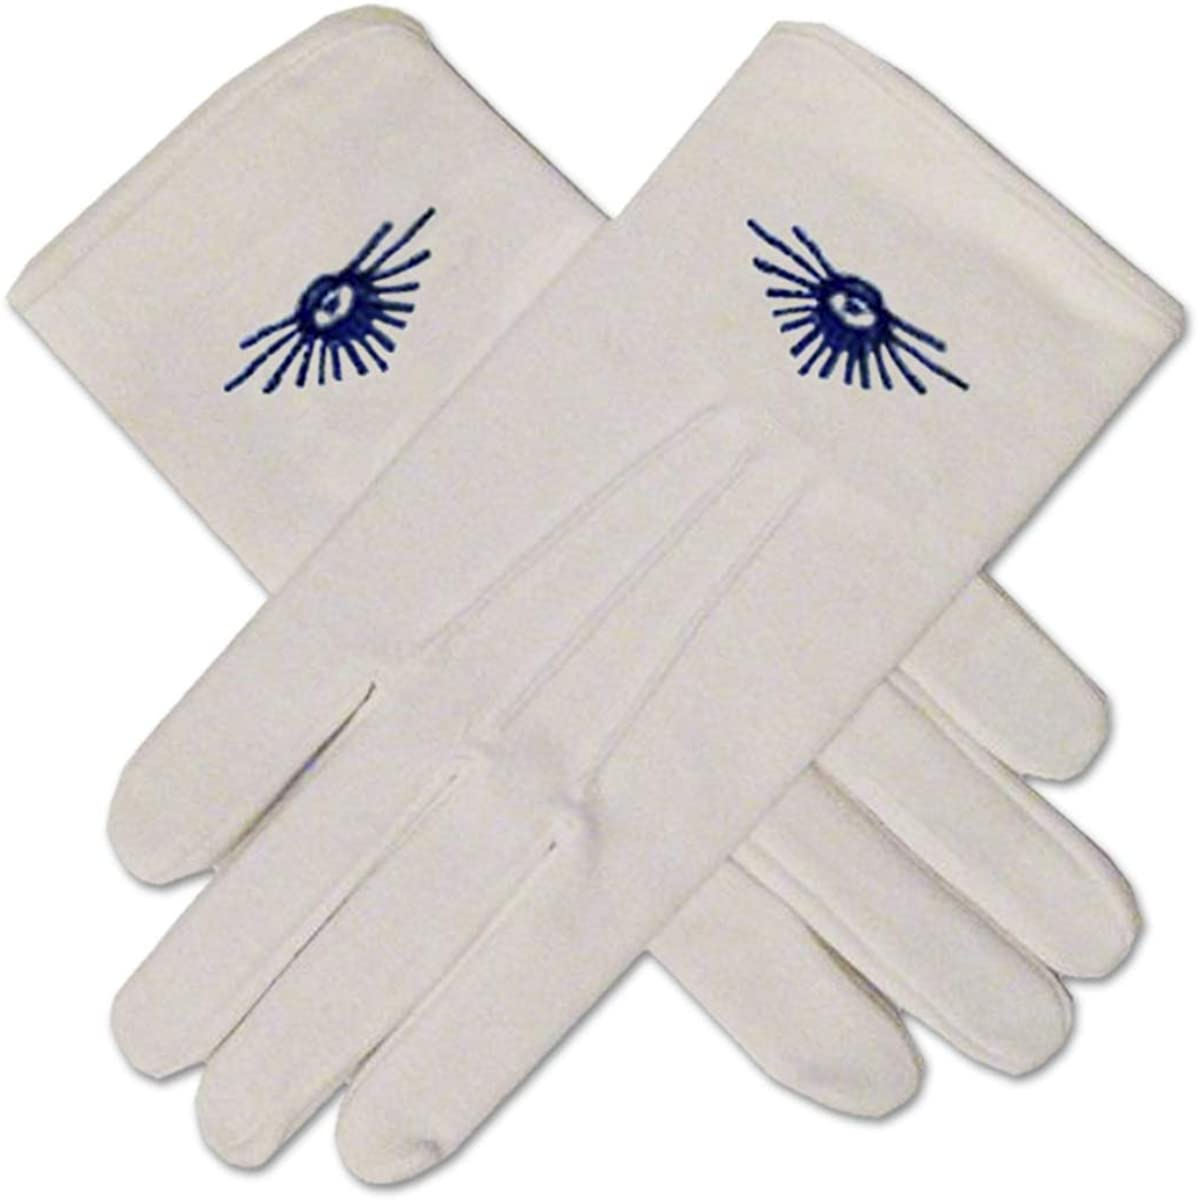 All Seeing Eye Hand Embroidered Cotton Masonic White Gloves